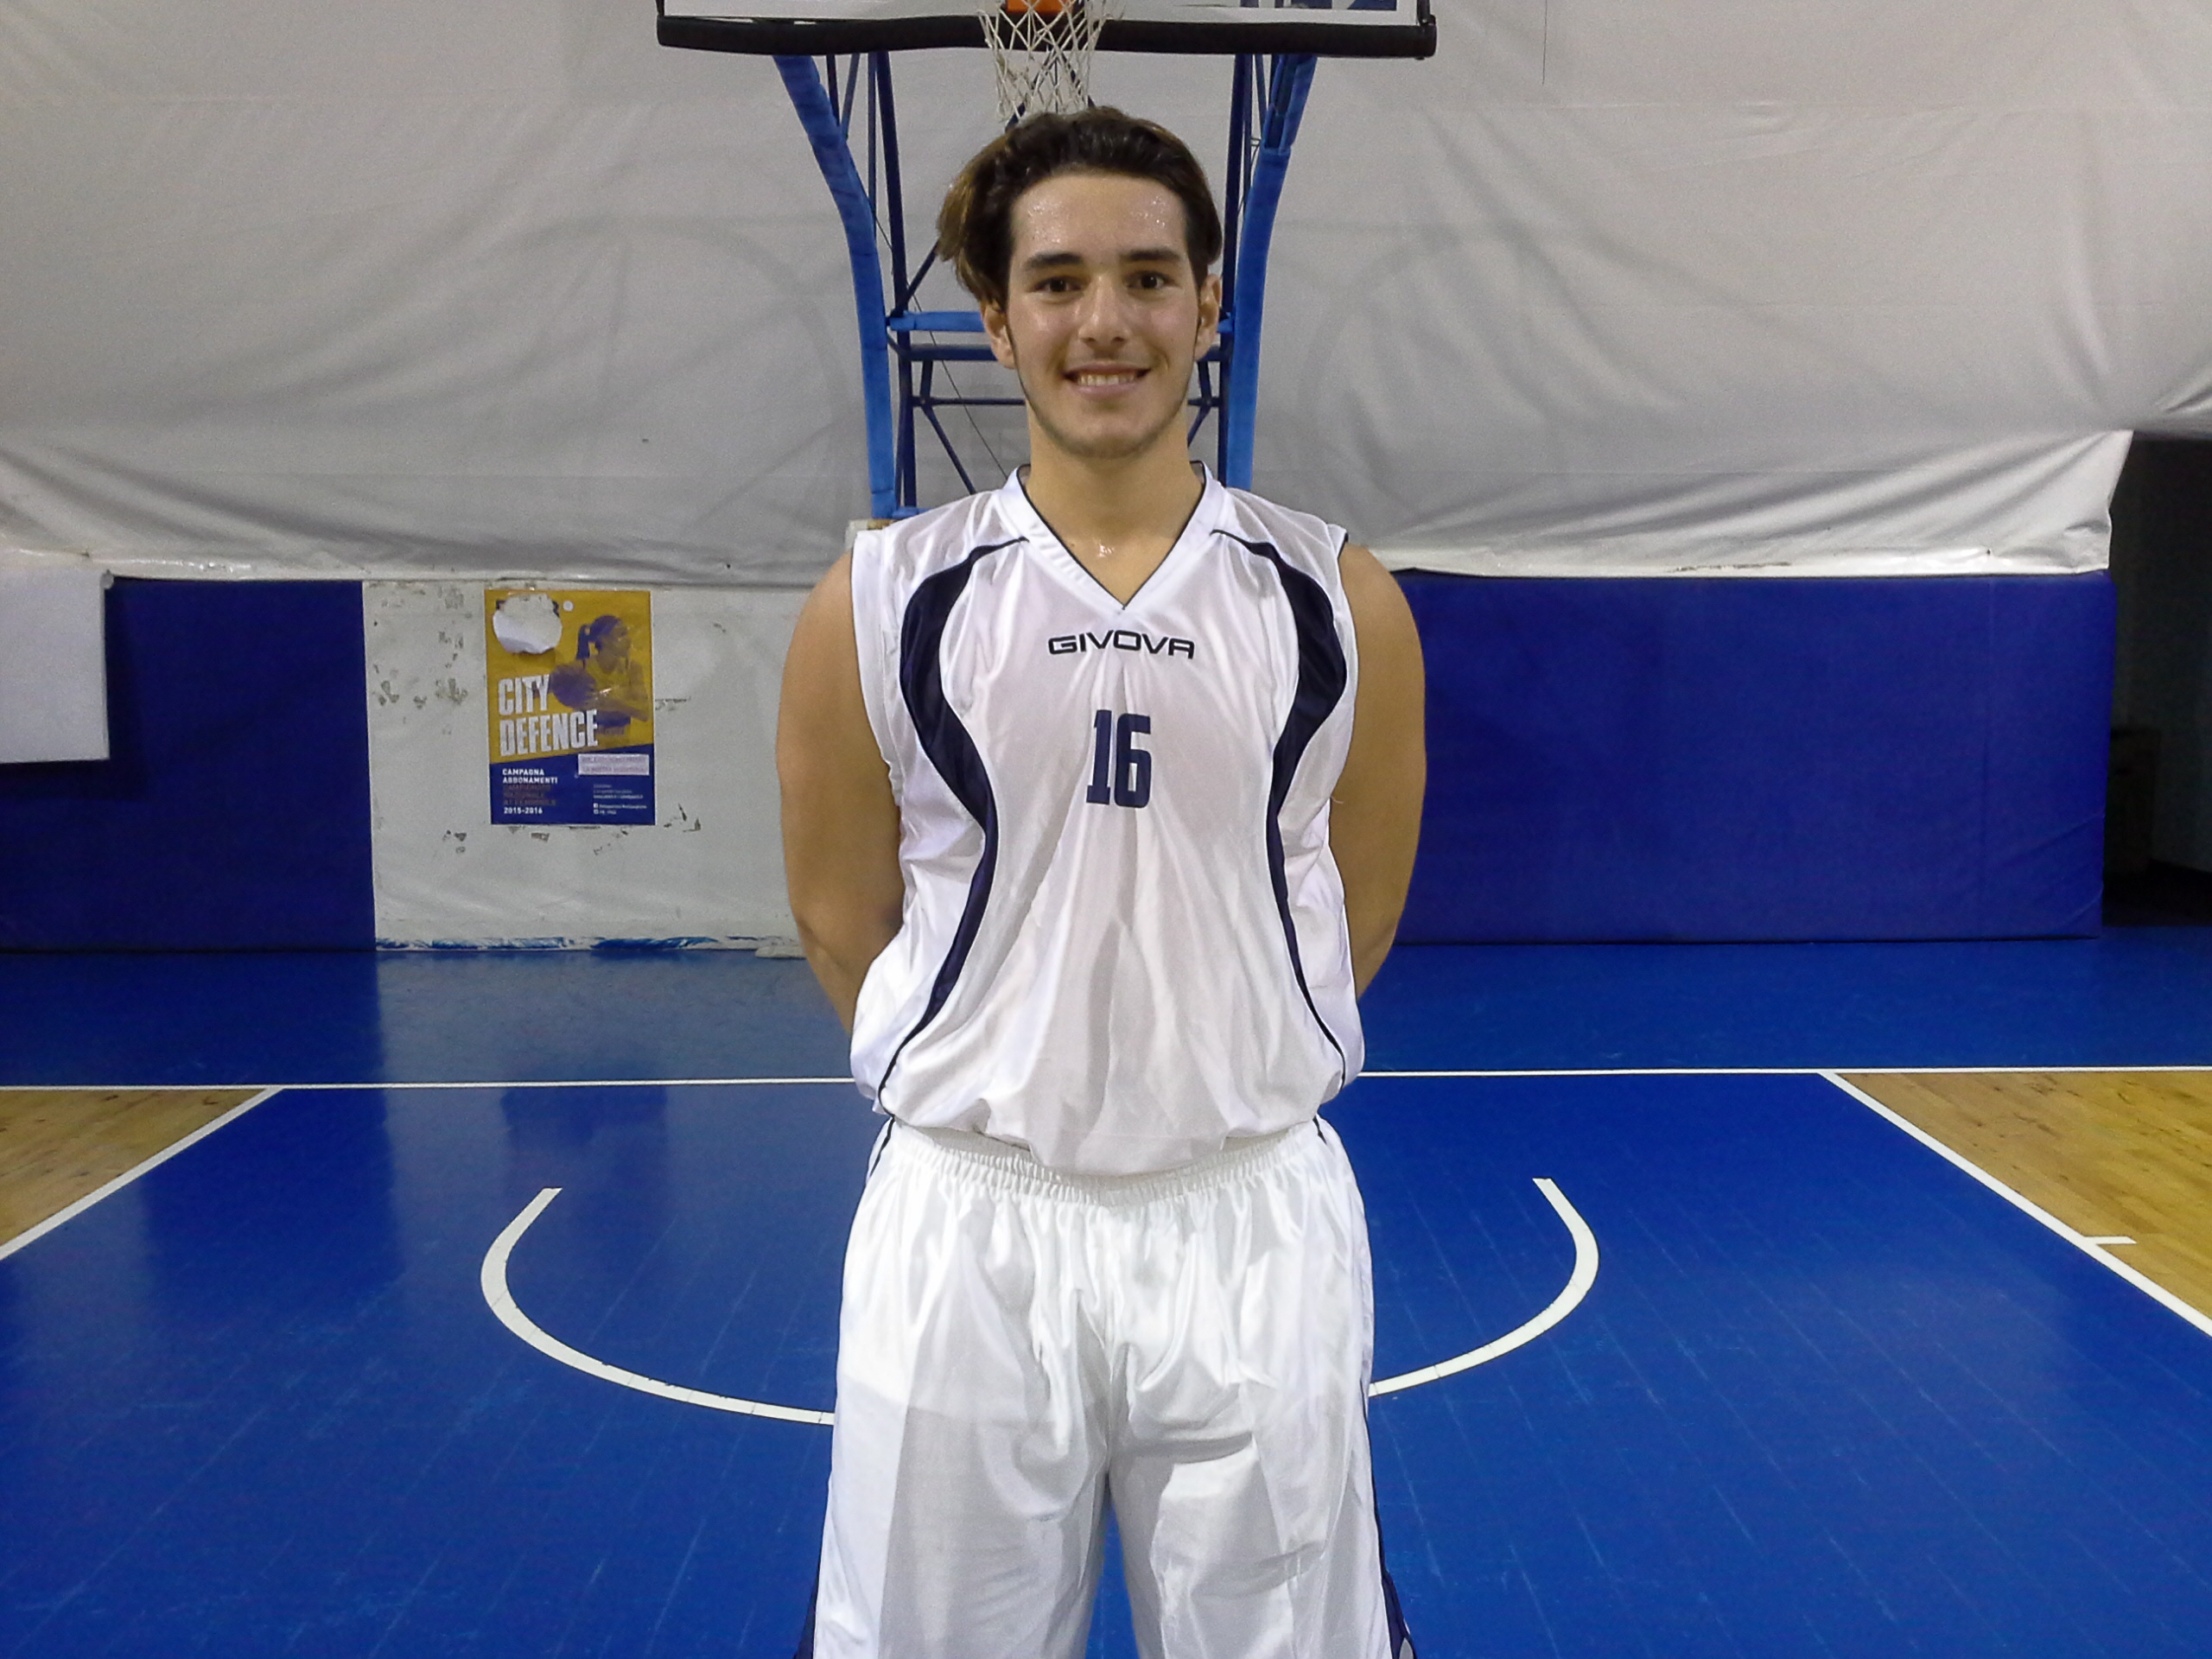 Niccolò Volpe dell'under 18 Regionale